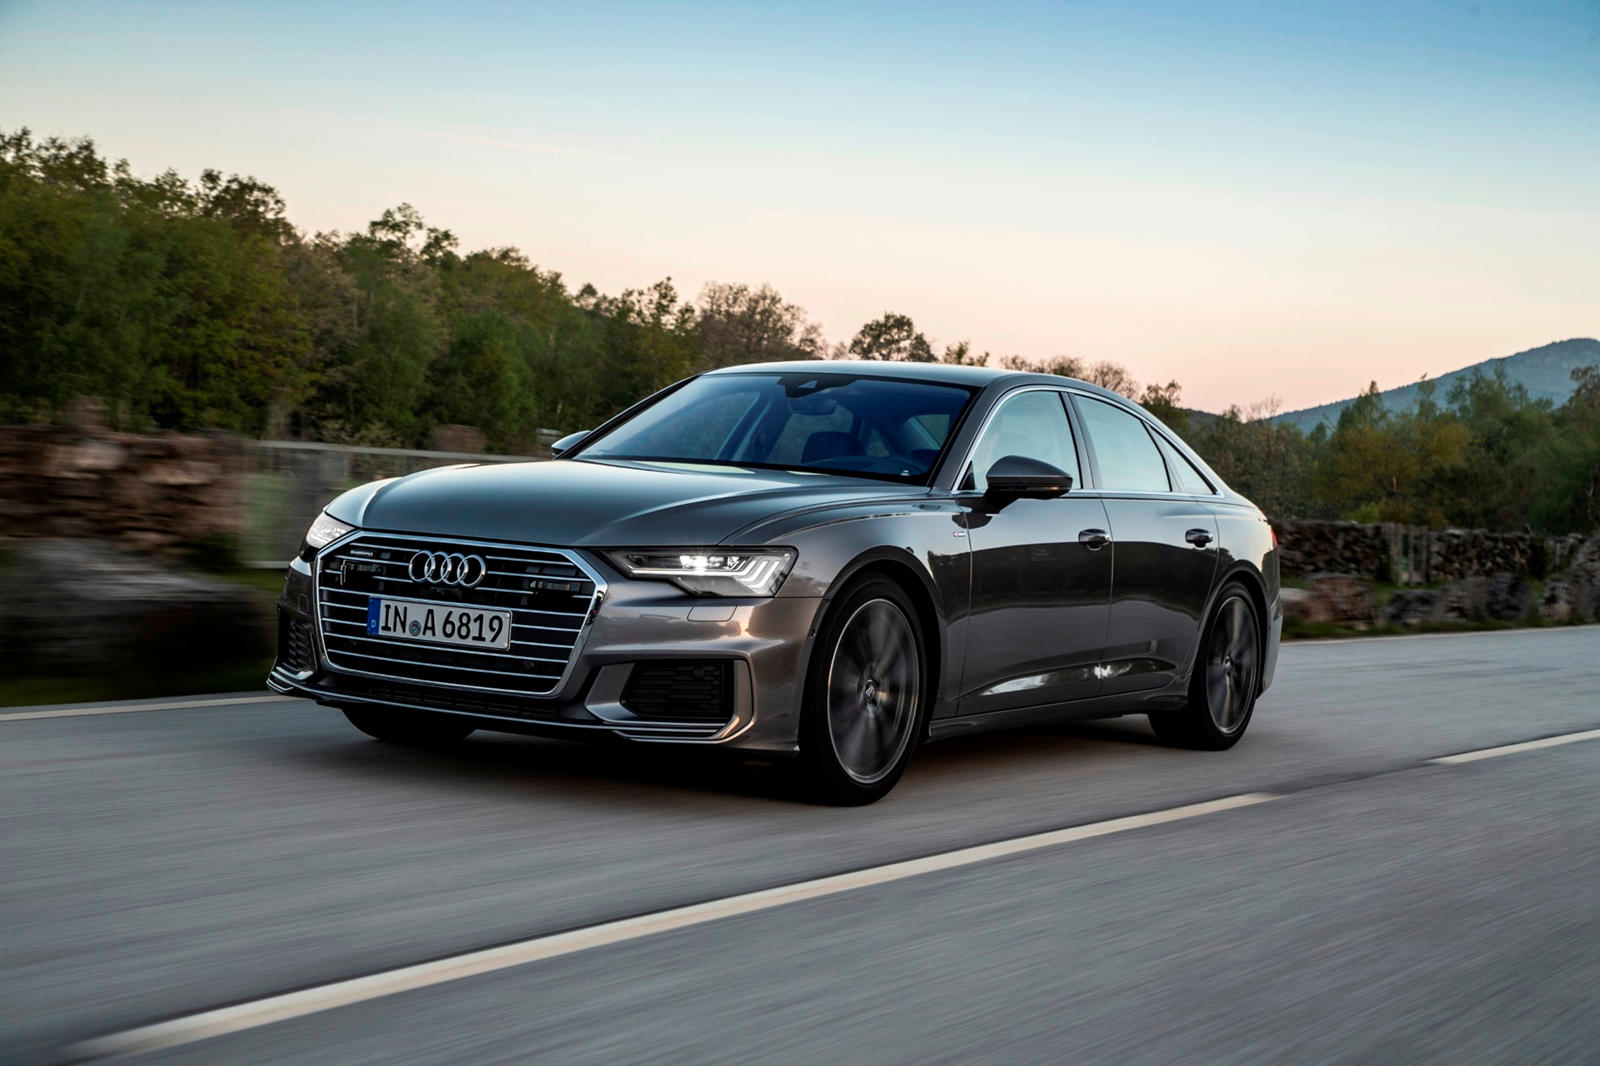 Audi A6 in action